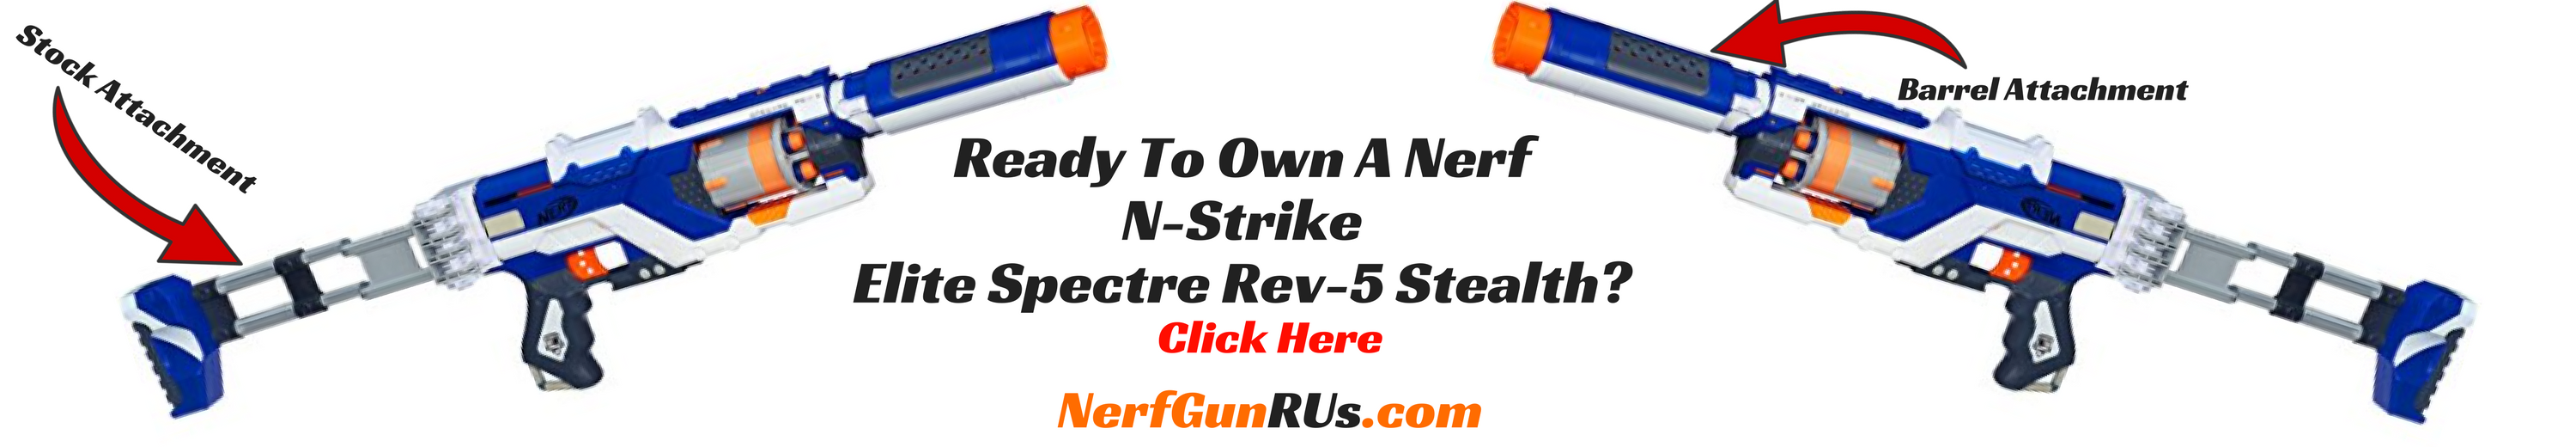 Ready To Own A Nerf N-Strike Elite Spectre Rev-5 Stealth